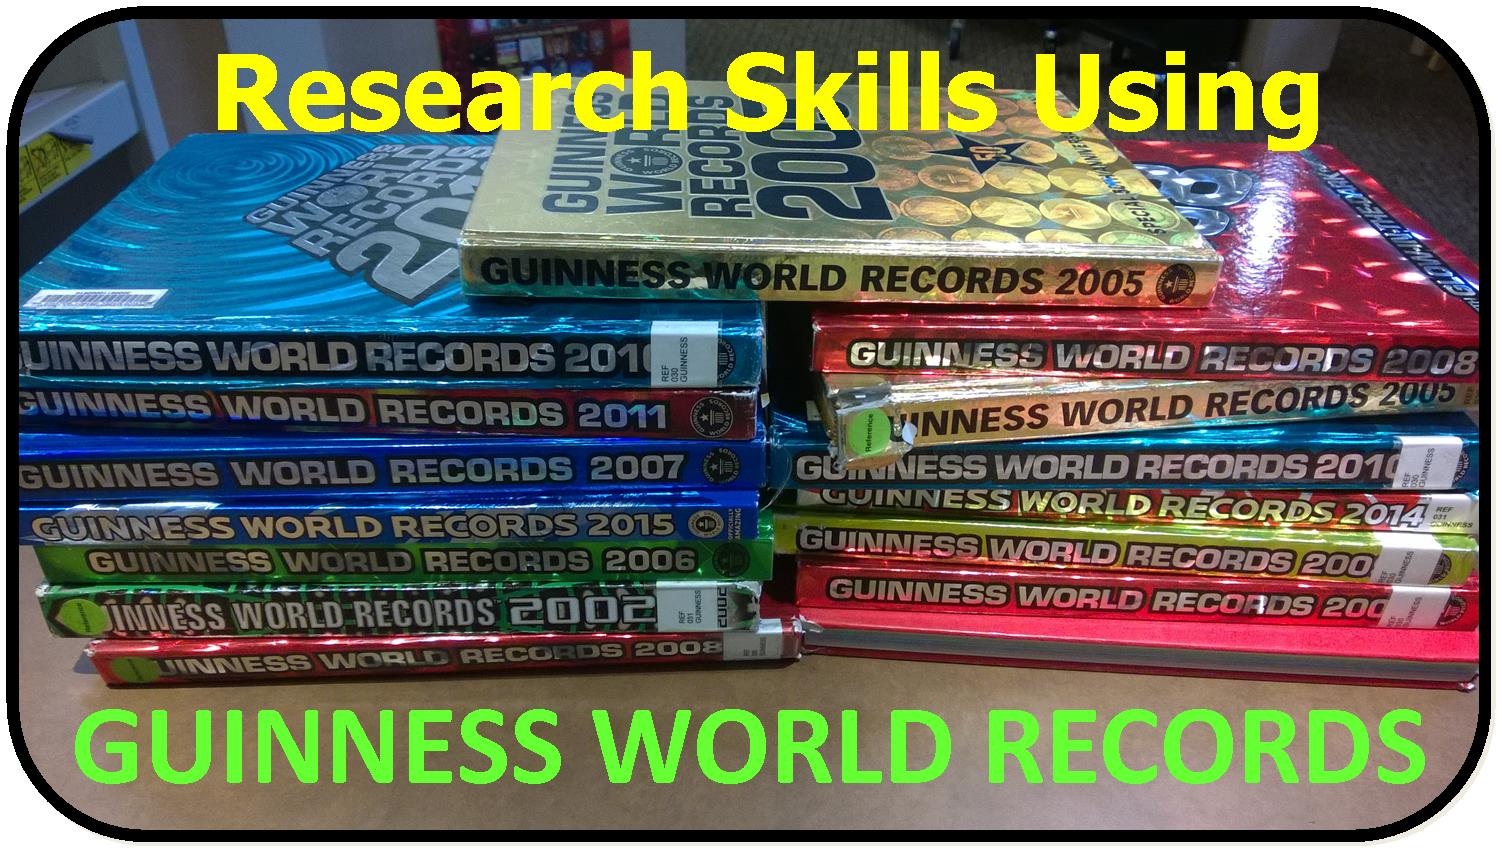 Research skills using the guinness book of world records for Guinness world record certificate template